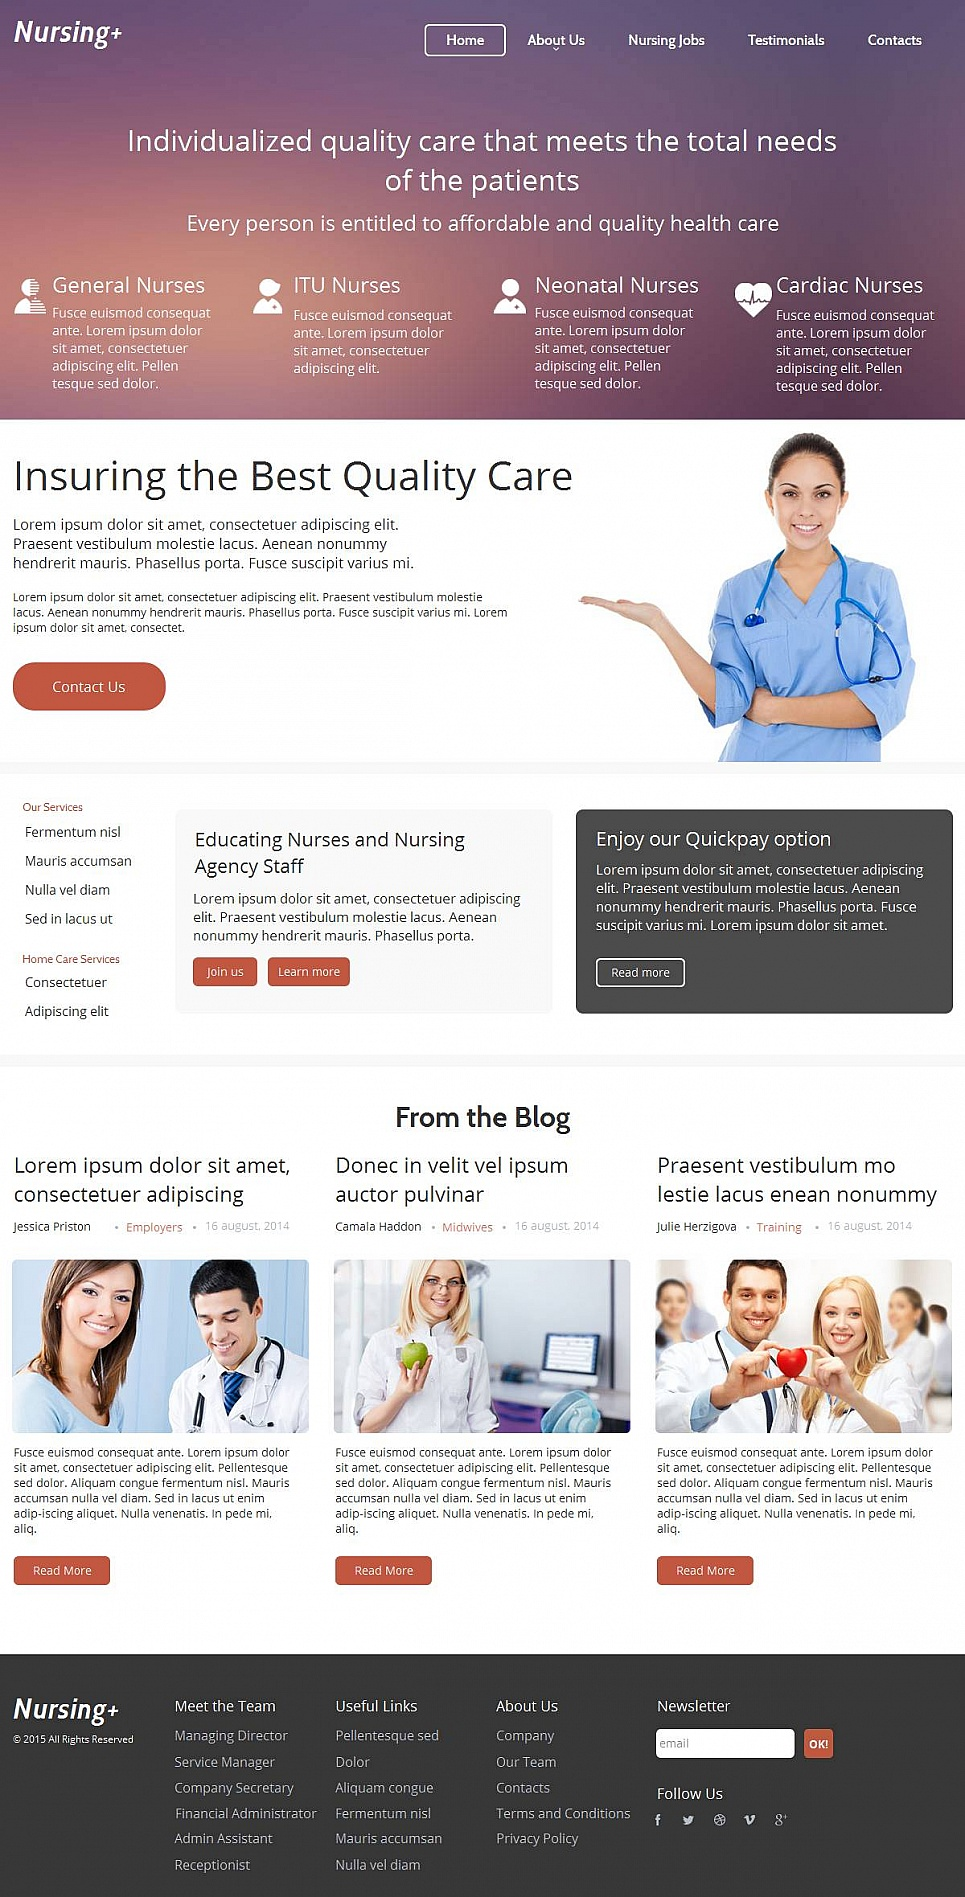 Nursing Care Website Design - image